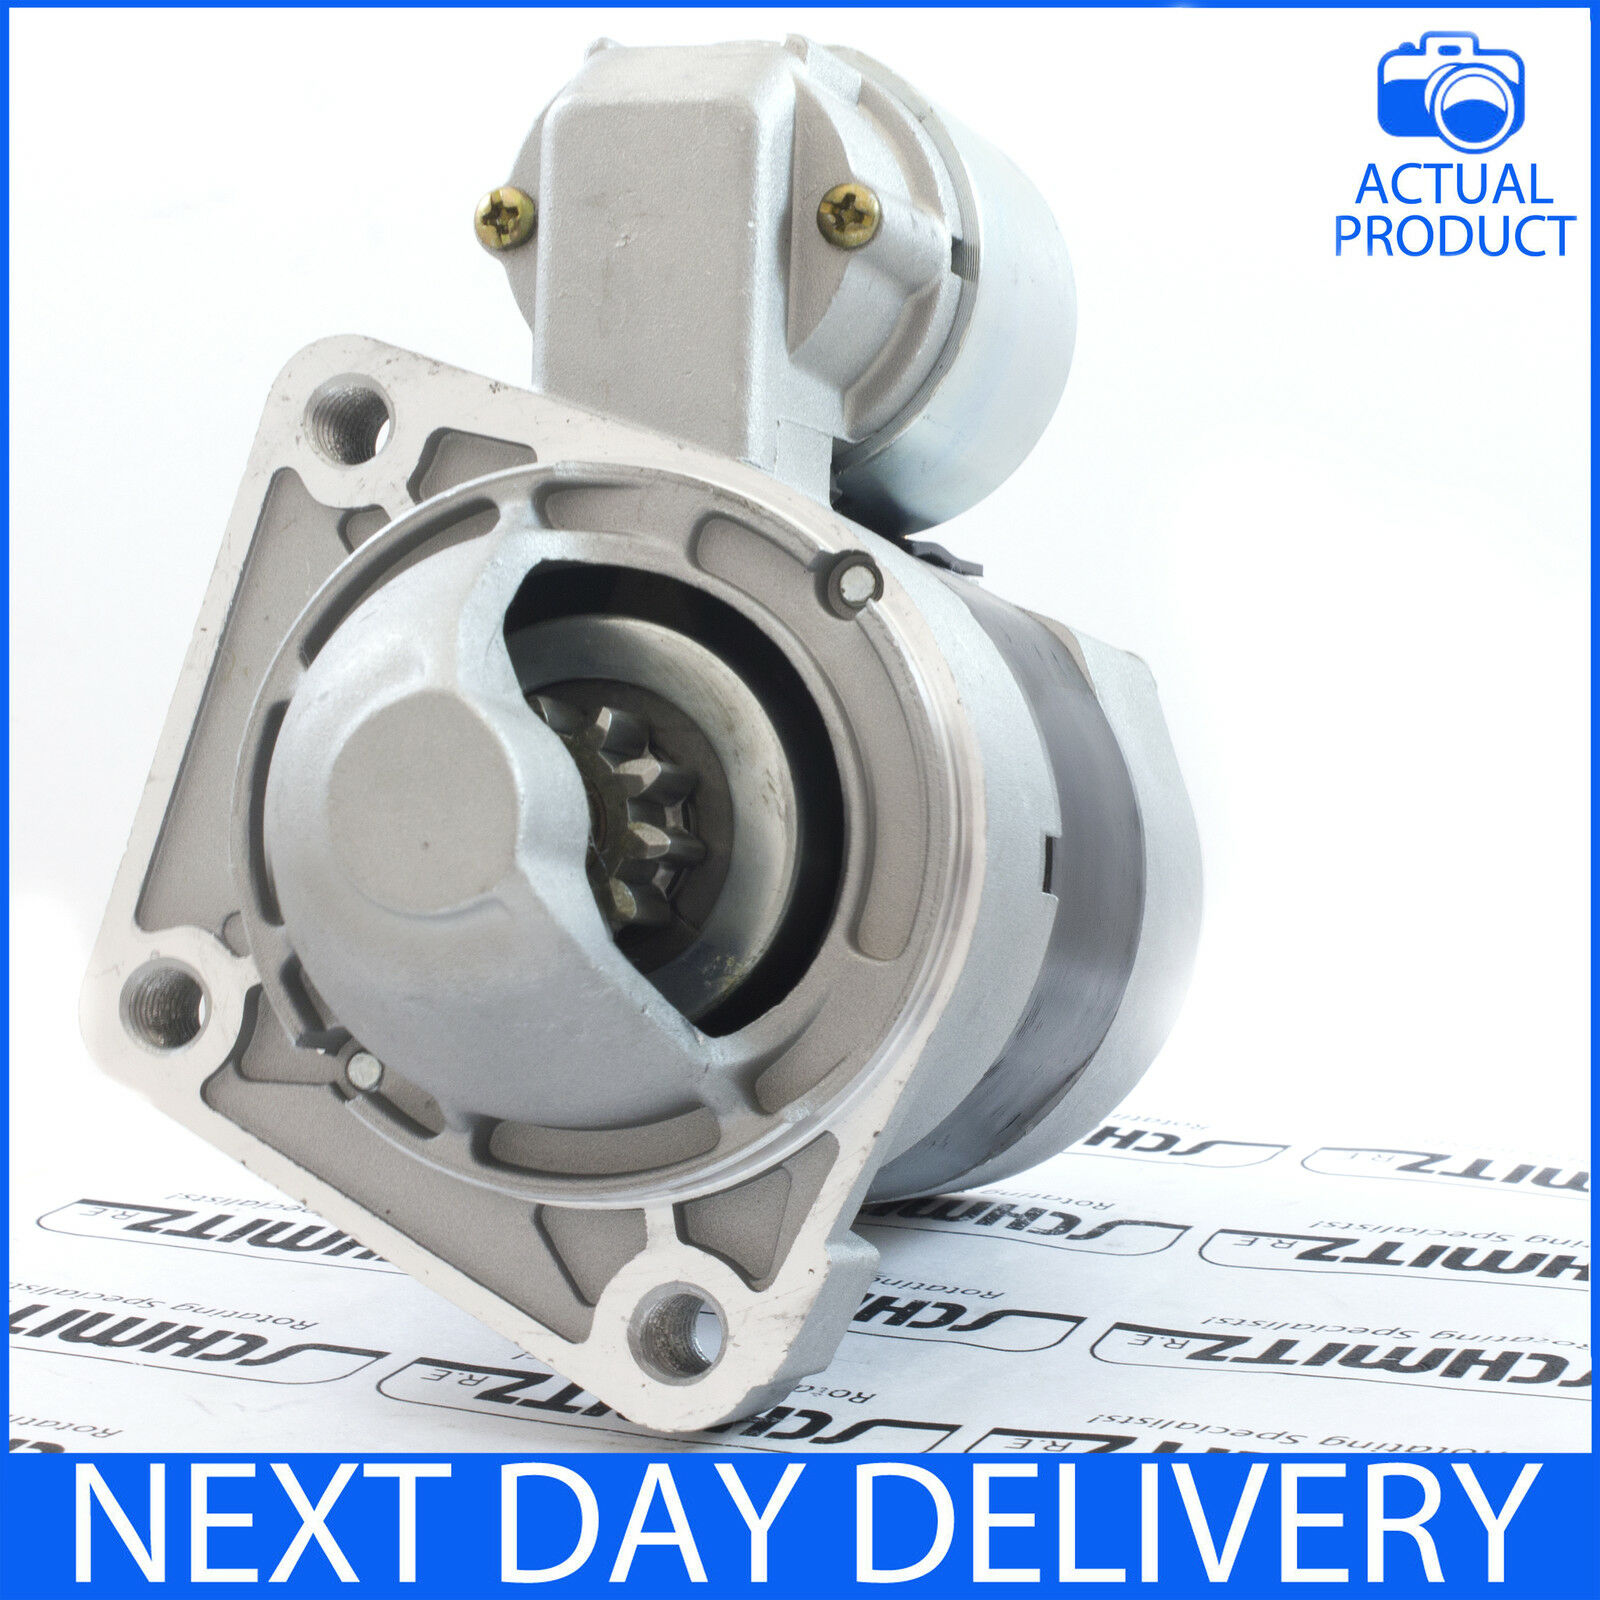 Fits Ford Ka Sportka Street 13 16 1996 2008 Petrol New Starter Bench Test Solenoid 1 Of 4free Shipping